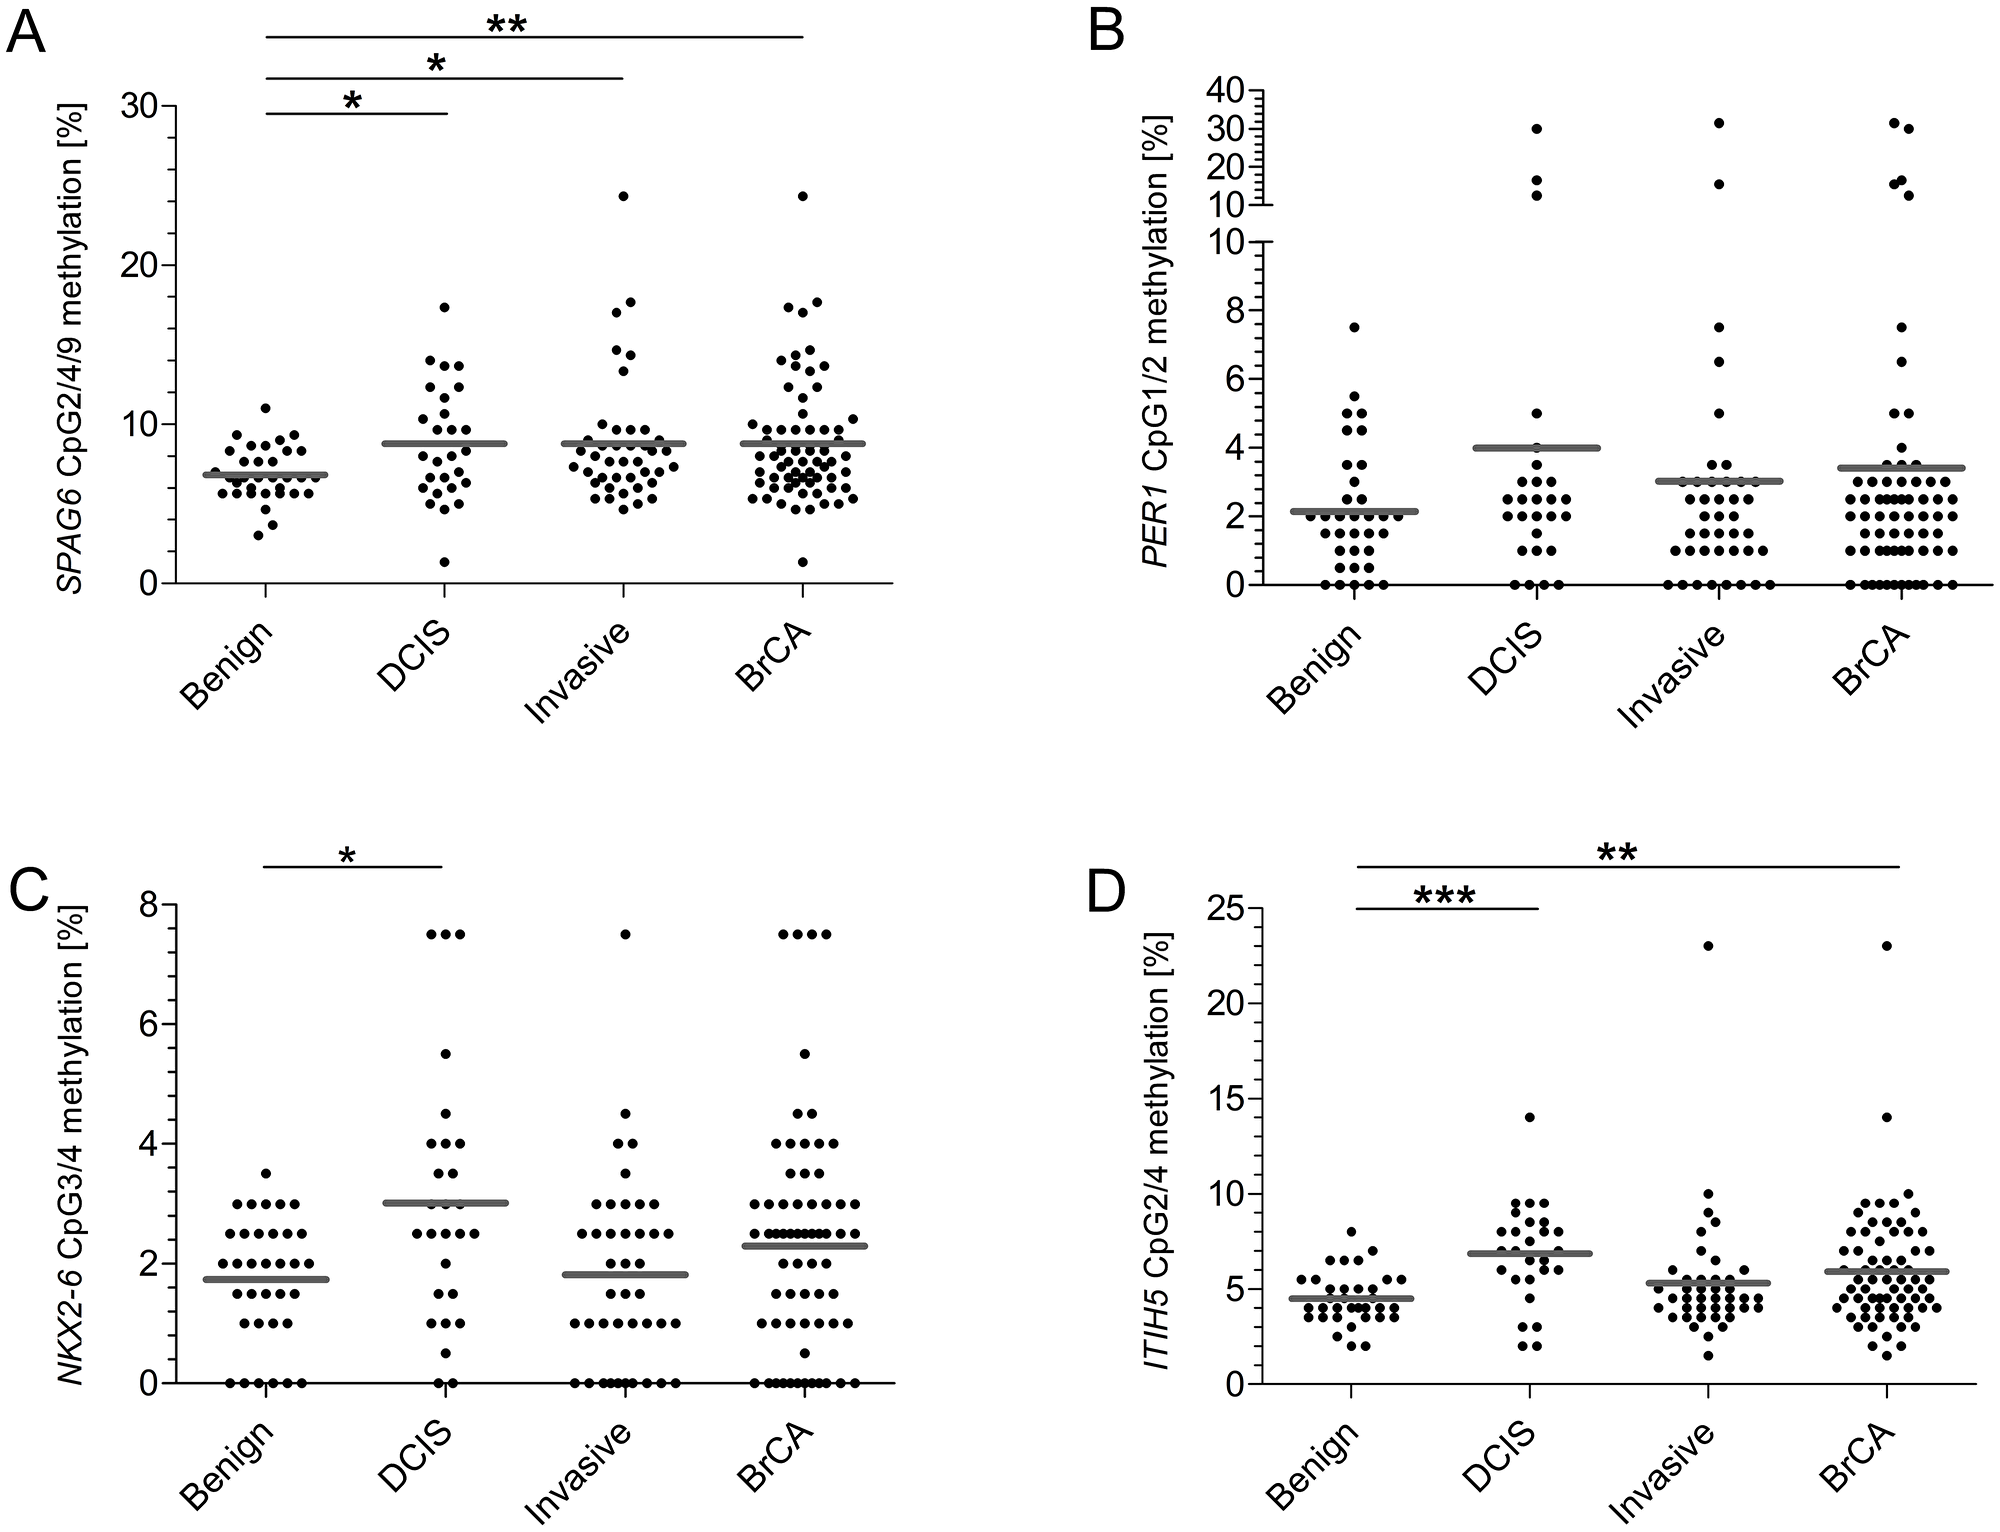 On basis of FC determined CpGs, SPAG6, NKX2-6 and ITIH5 show significantly increased methylation frequencies in the test cohort.